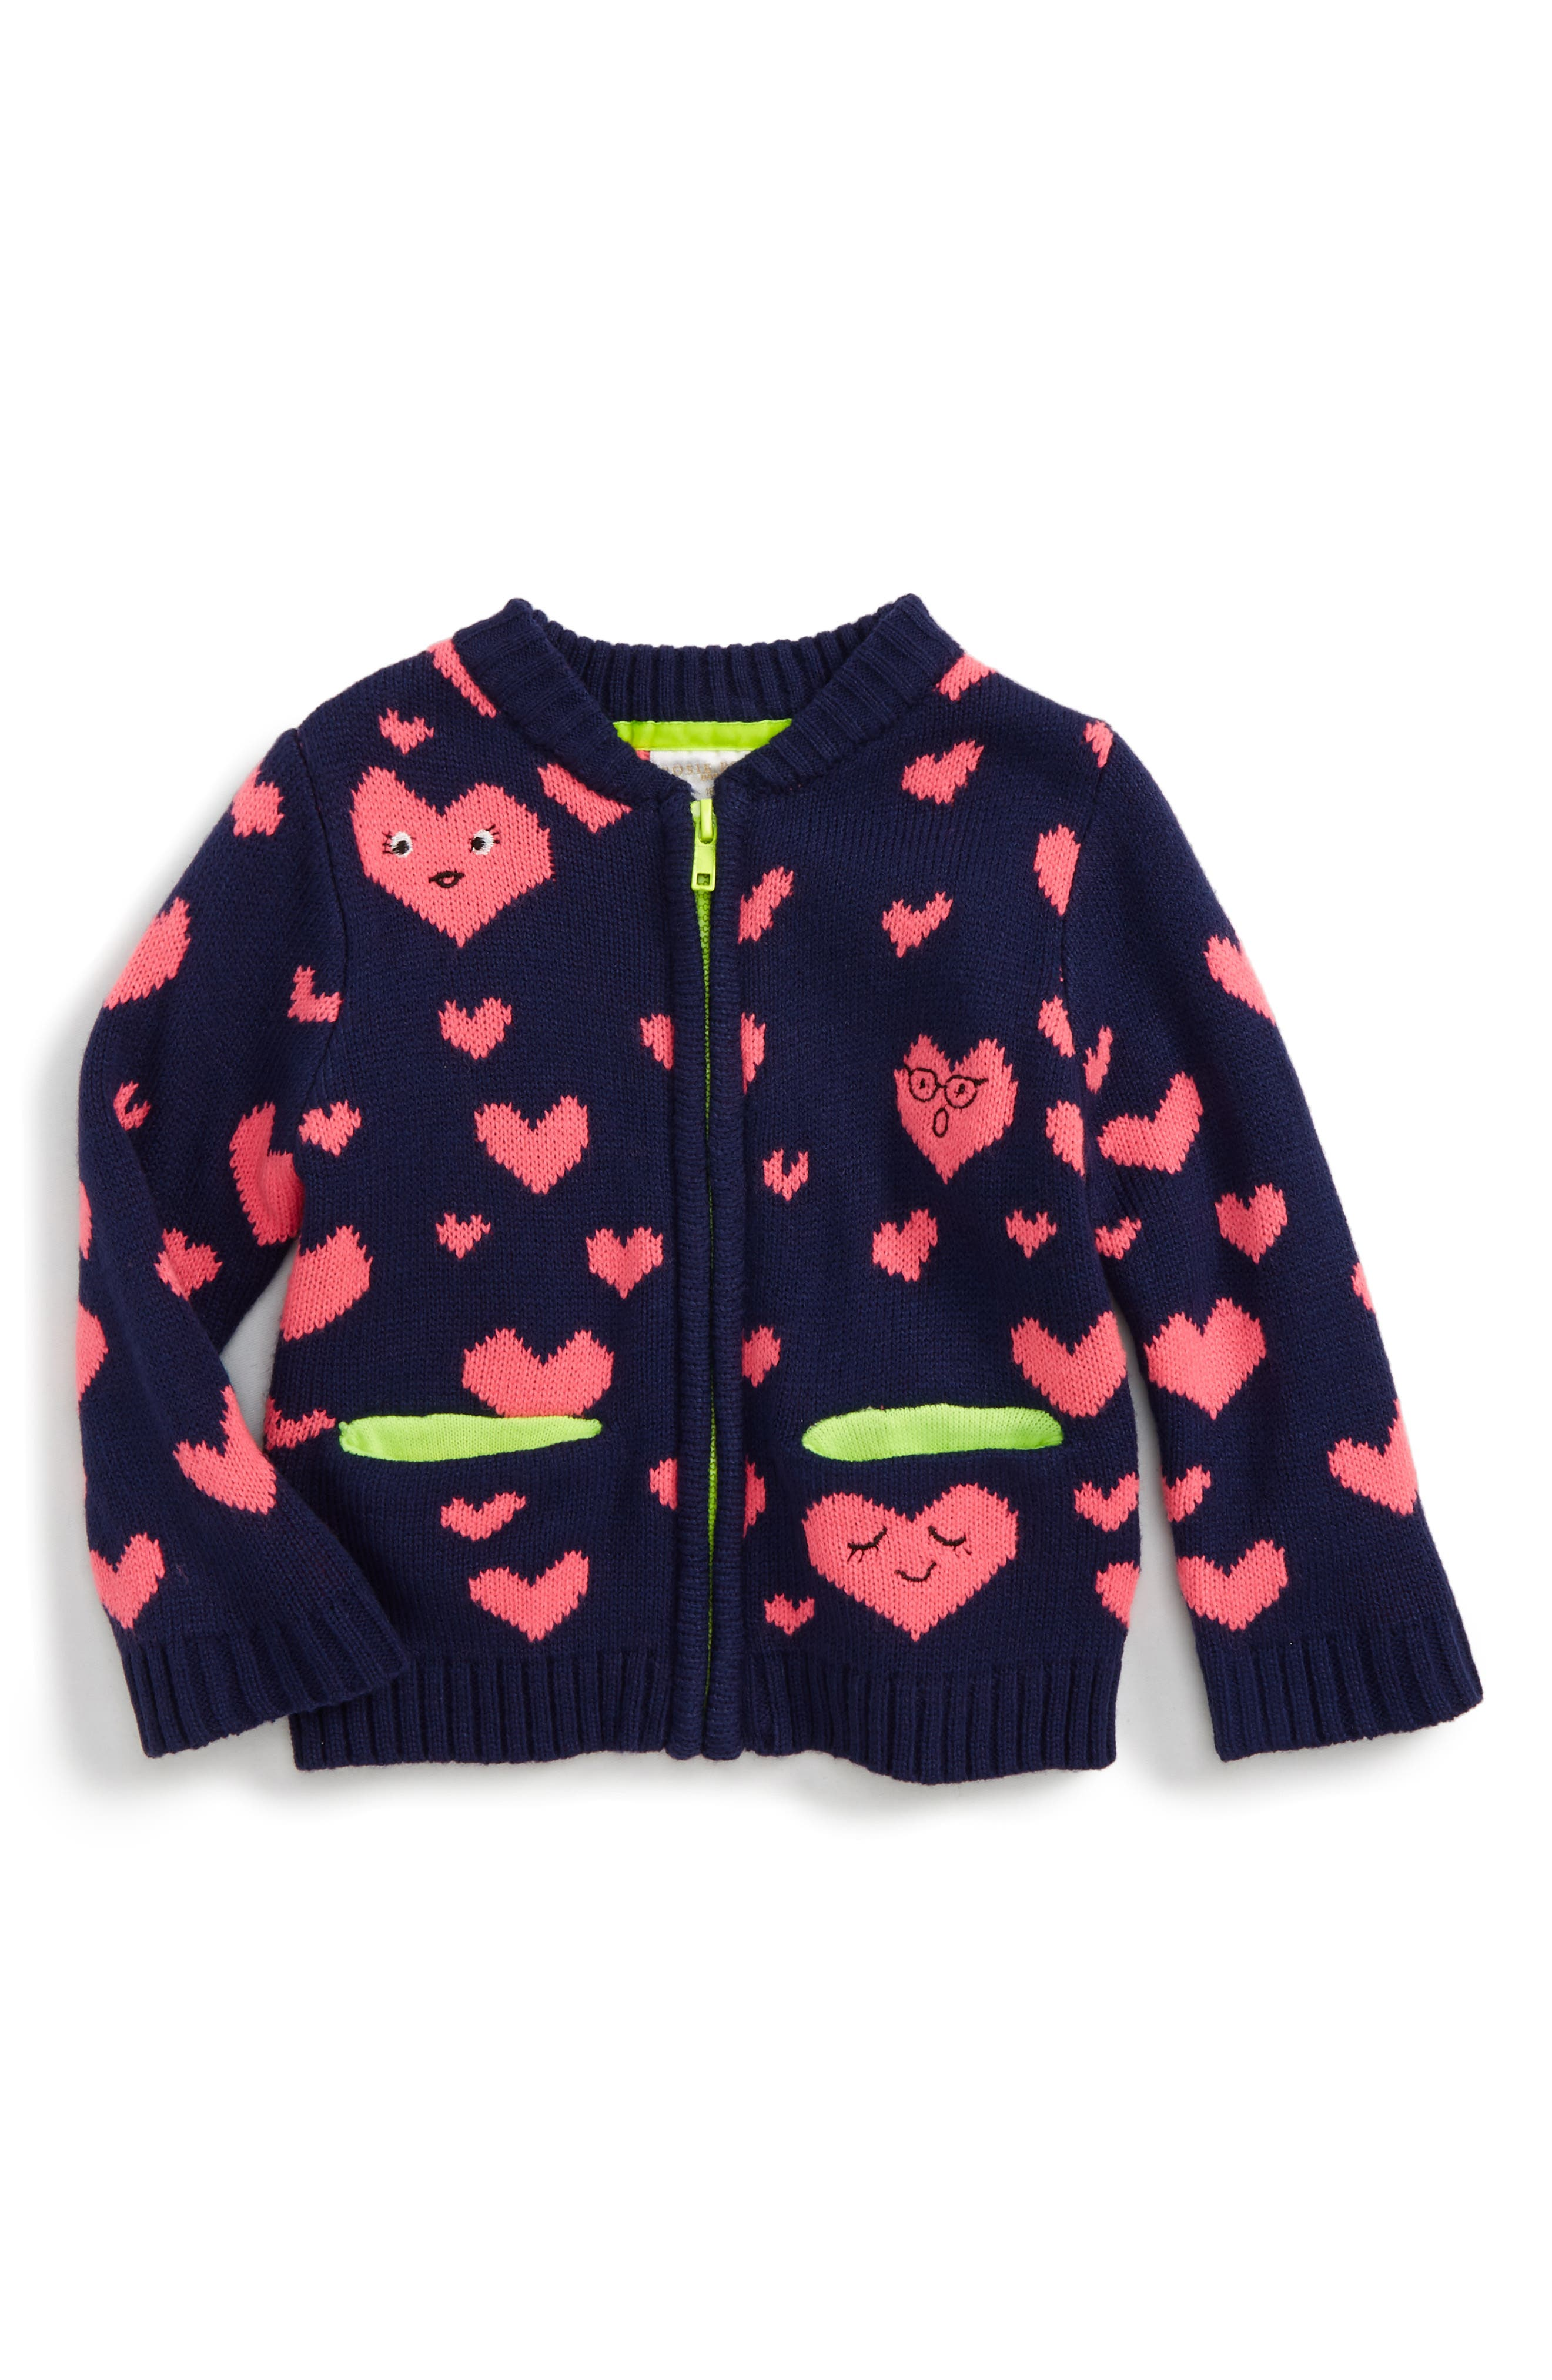 Heart Zip Up Cardigan,                         Main,                         color, Navy